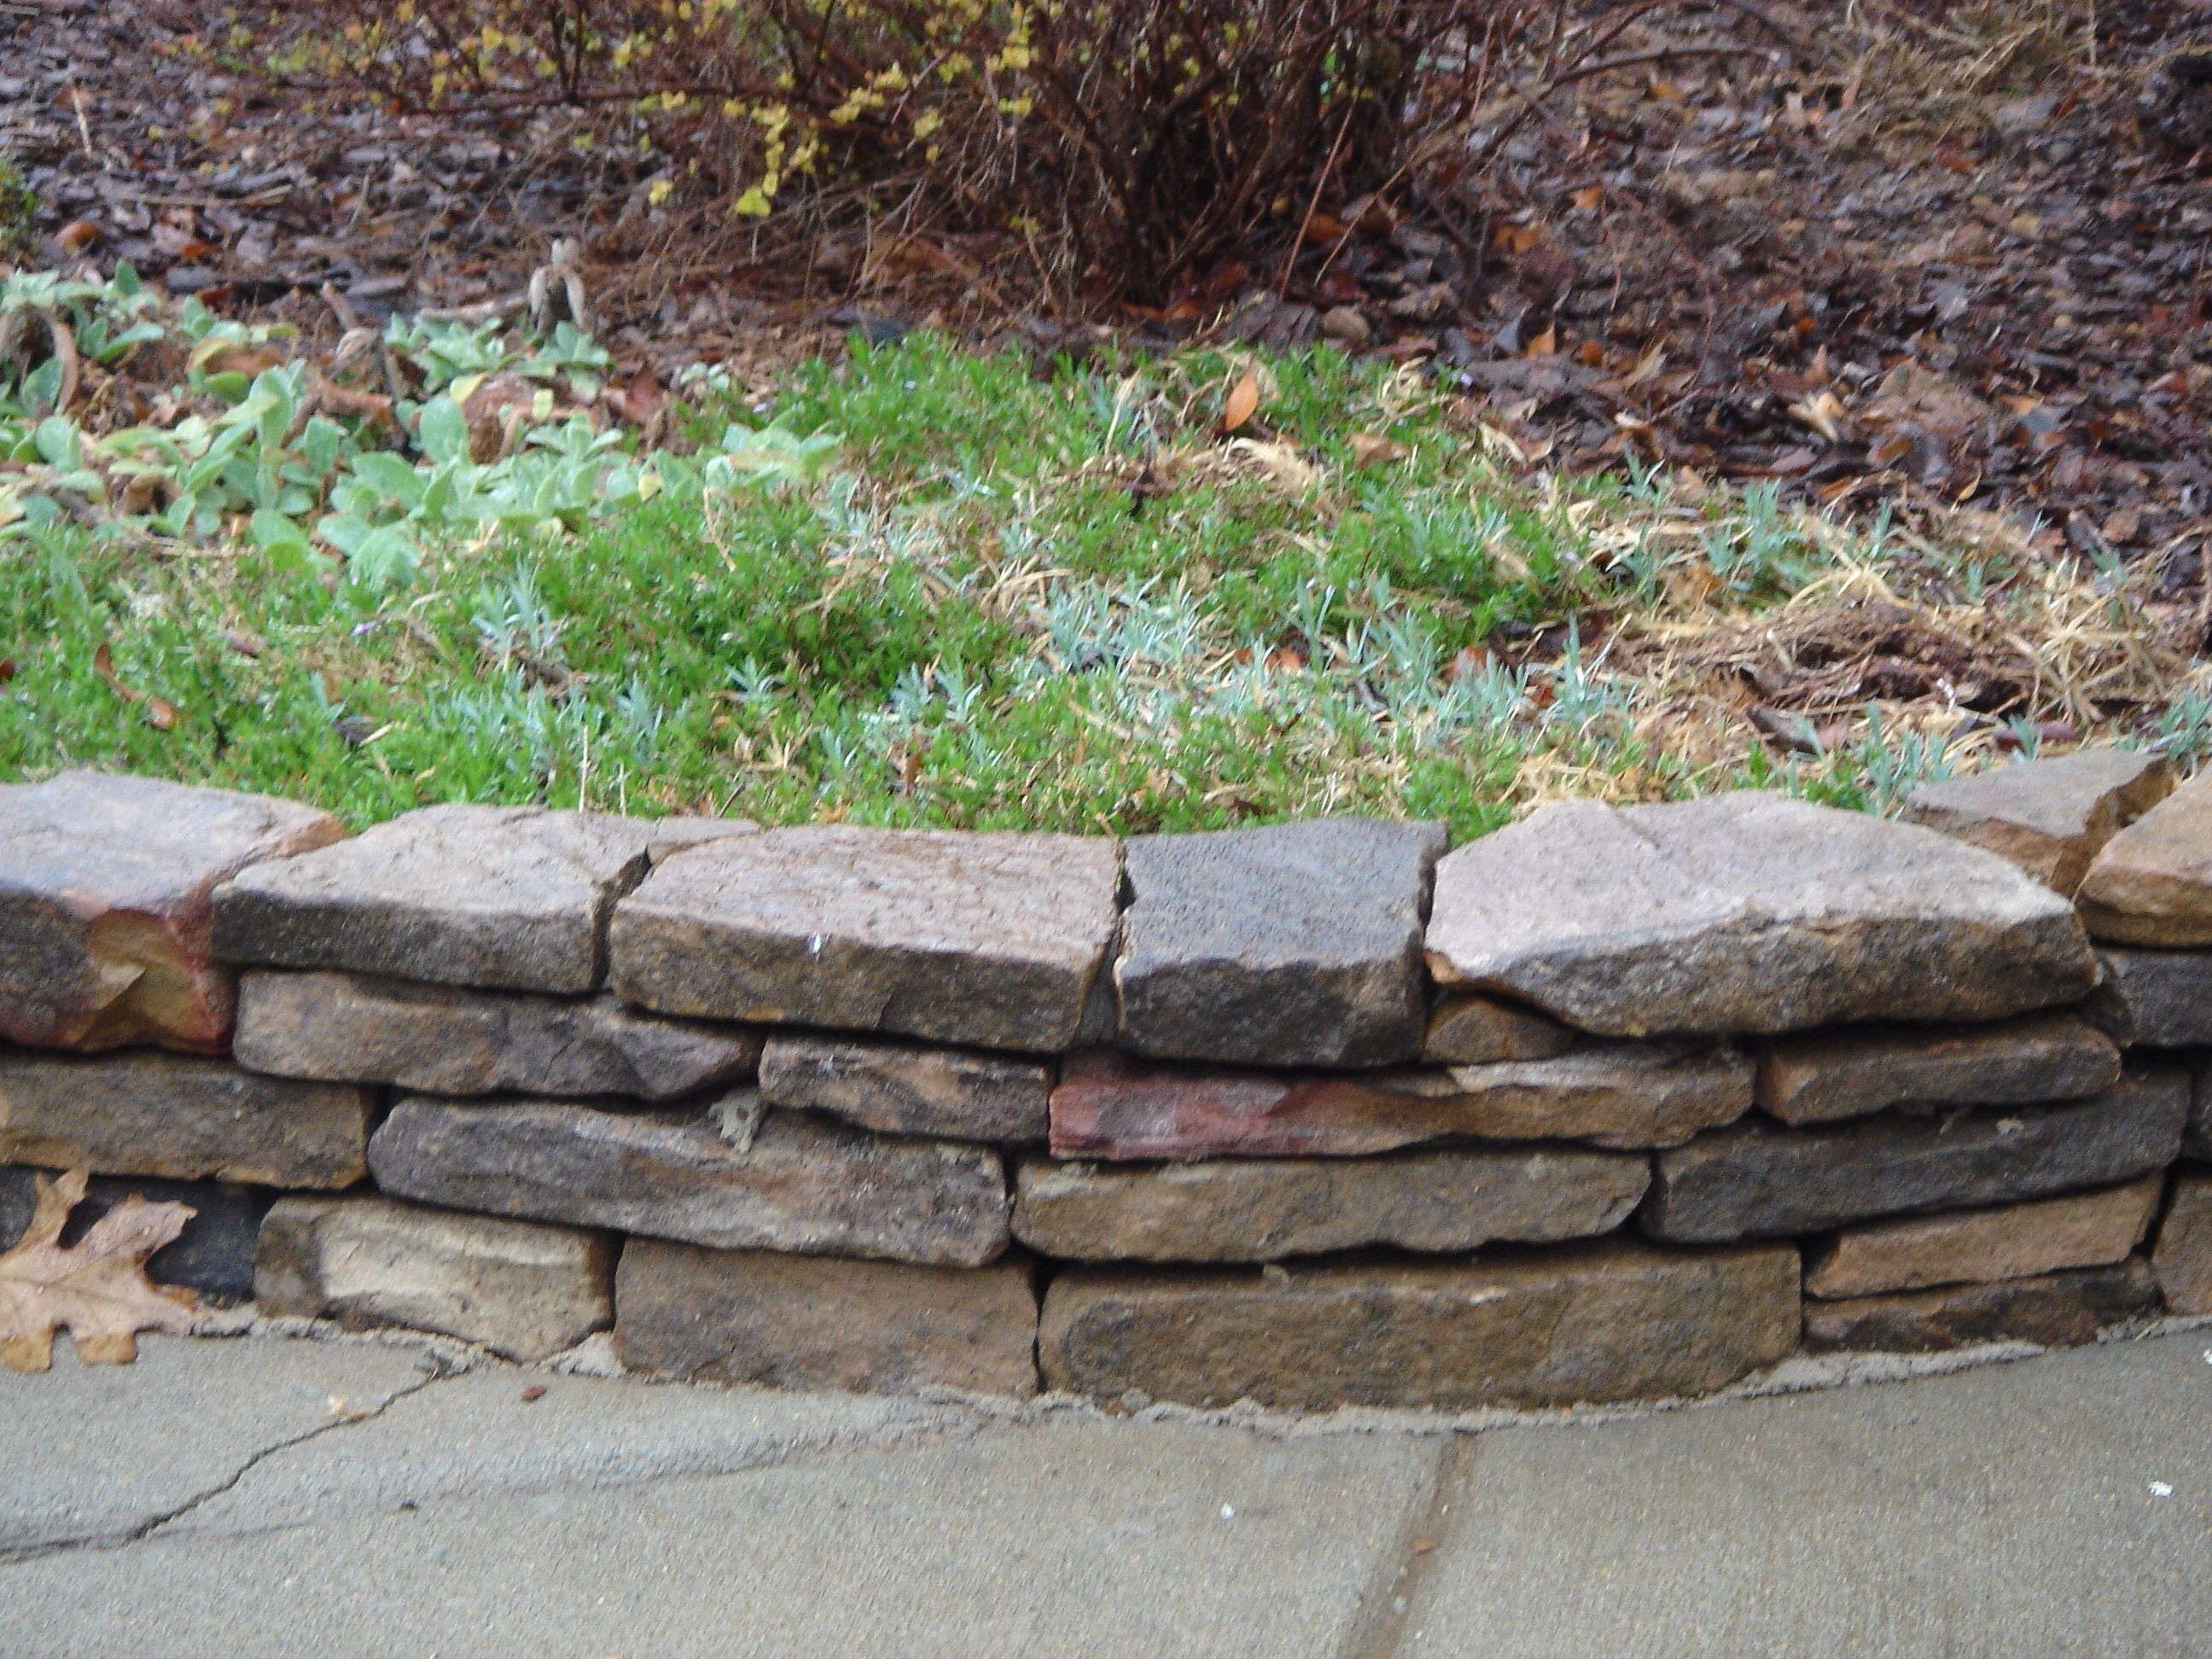 Stacked stone flower bed border - Garden and Home  #raisedgardens #raisedgardening #gardeningonaslope #flowerbeds